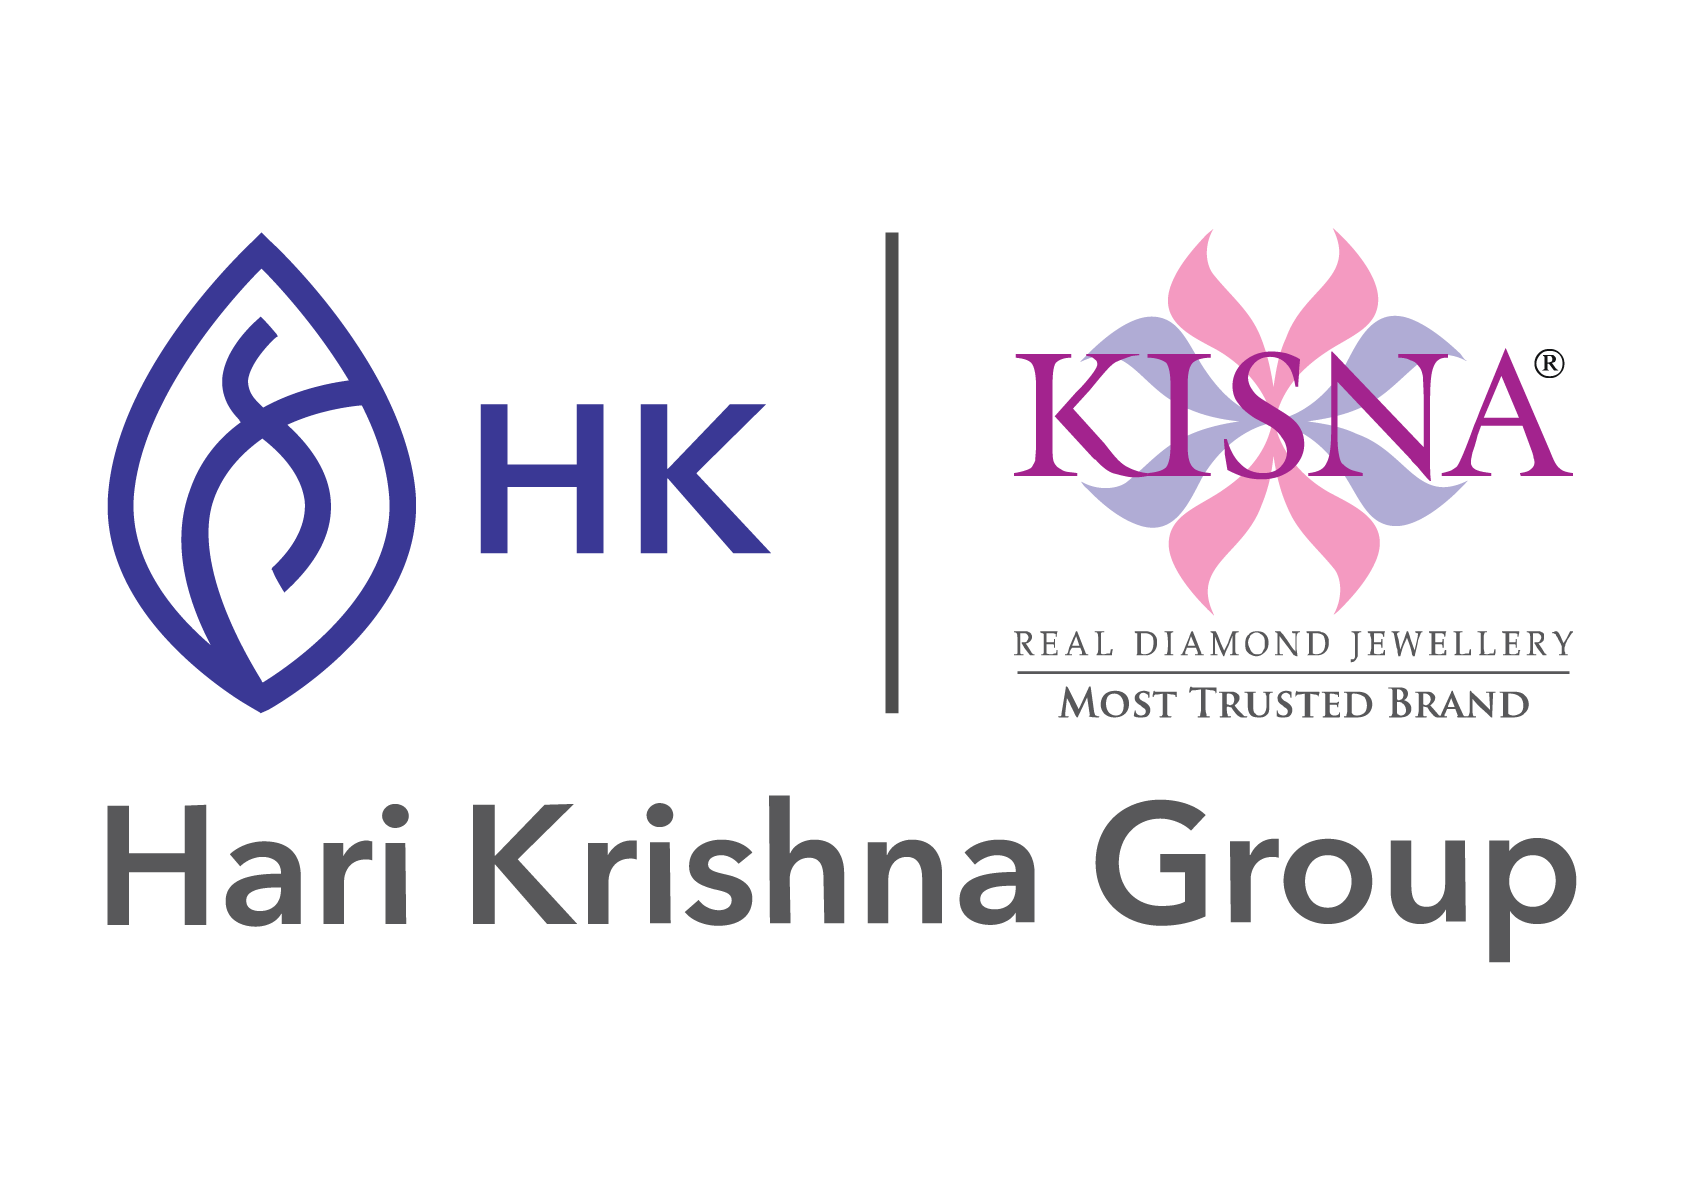 Hari Krishna Group